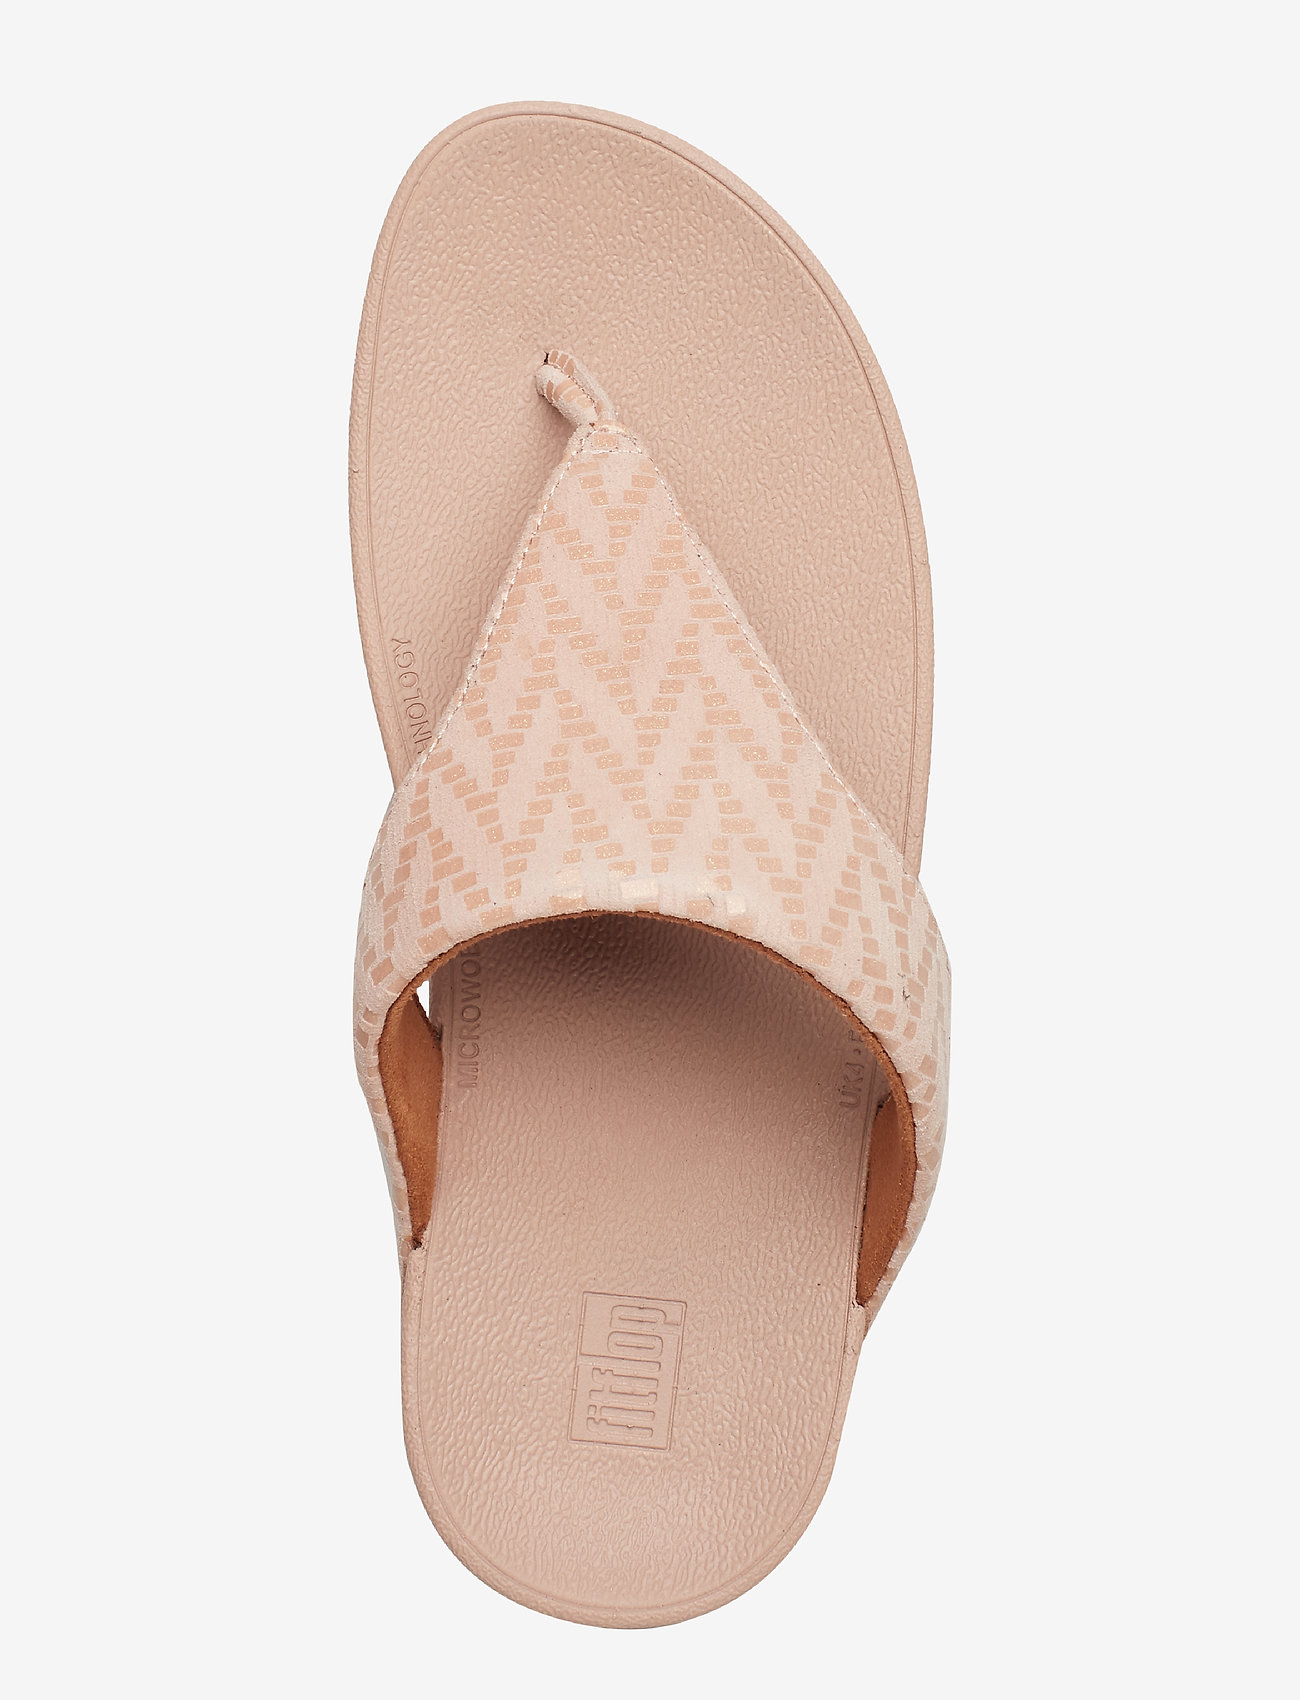 Lottie Chevron Sd Tp (Oyster Pink) - FitFlop